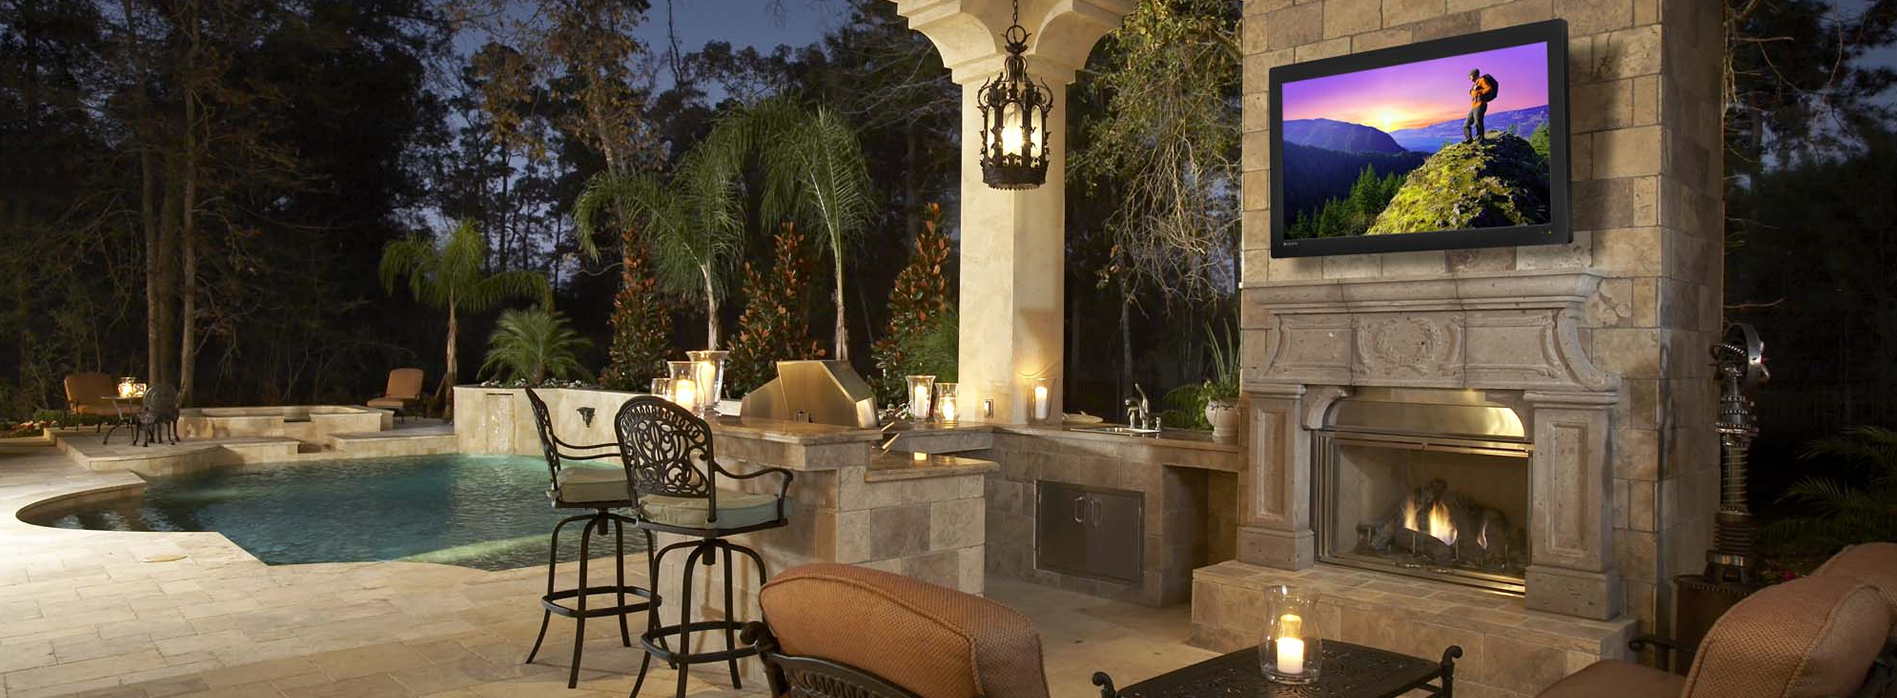 Outdoor TV Installation New Jersey